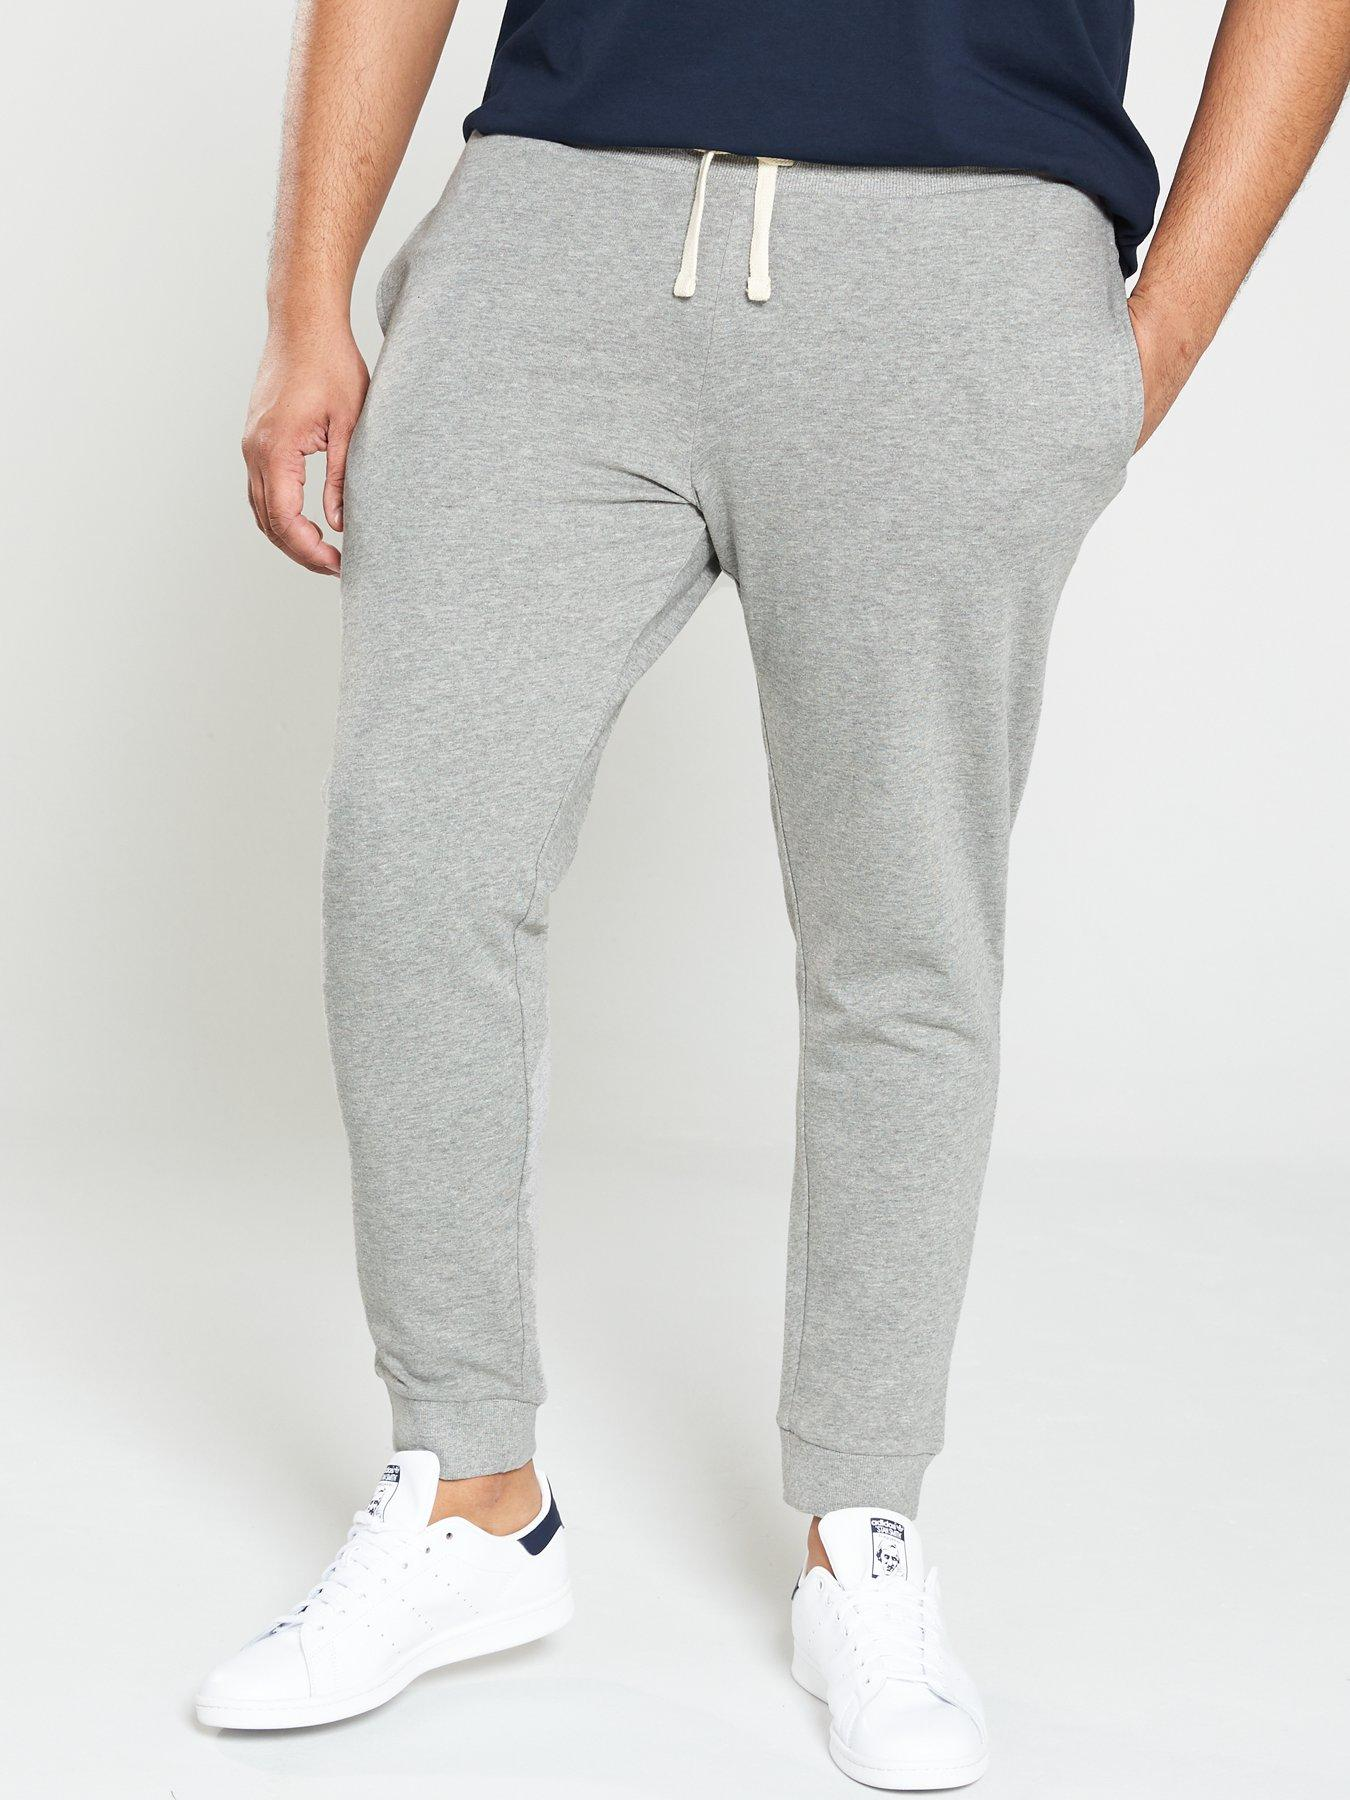 Strong-Willed River Island Baby Boys Grey Marl Joggers Age 12-18 Months Bottoms Boys' Clothing (newborn-5t)